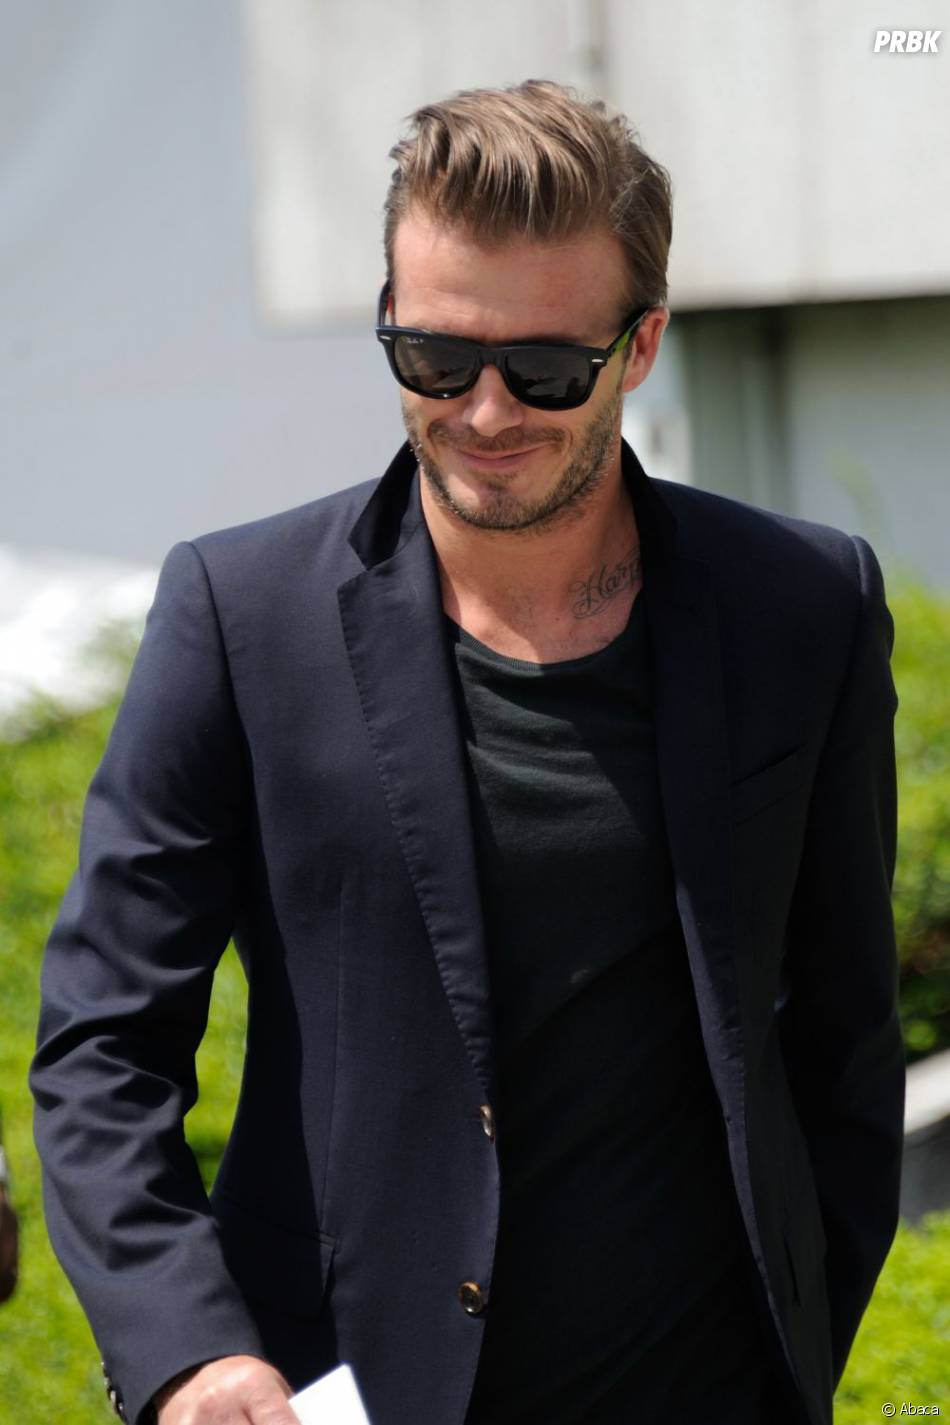 The Gallery For David Beckham Fashion Style 2013